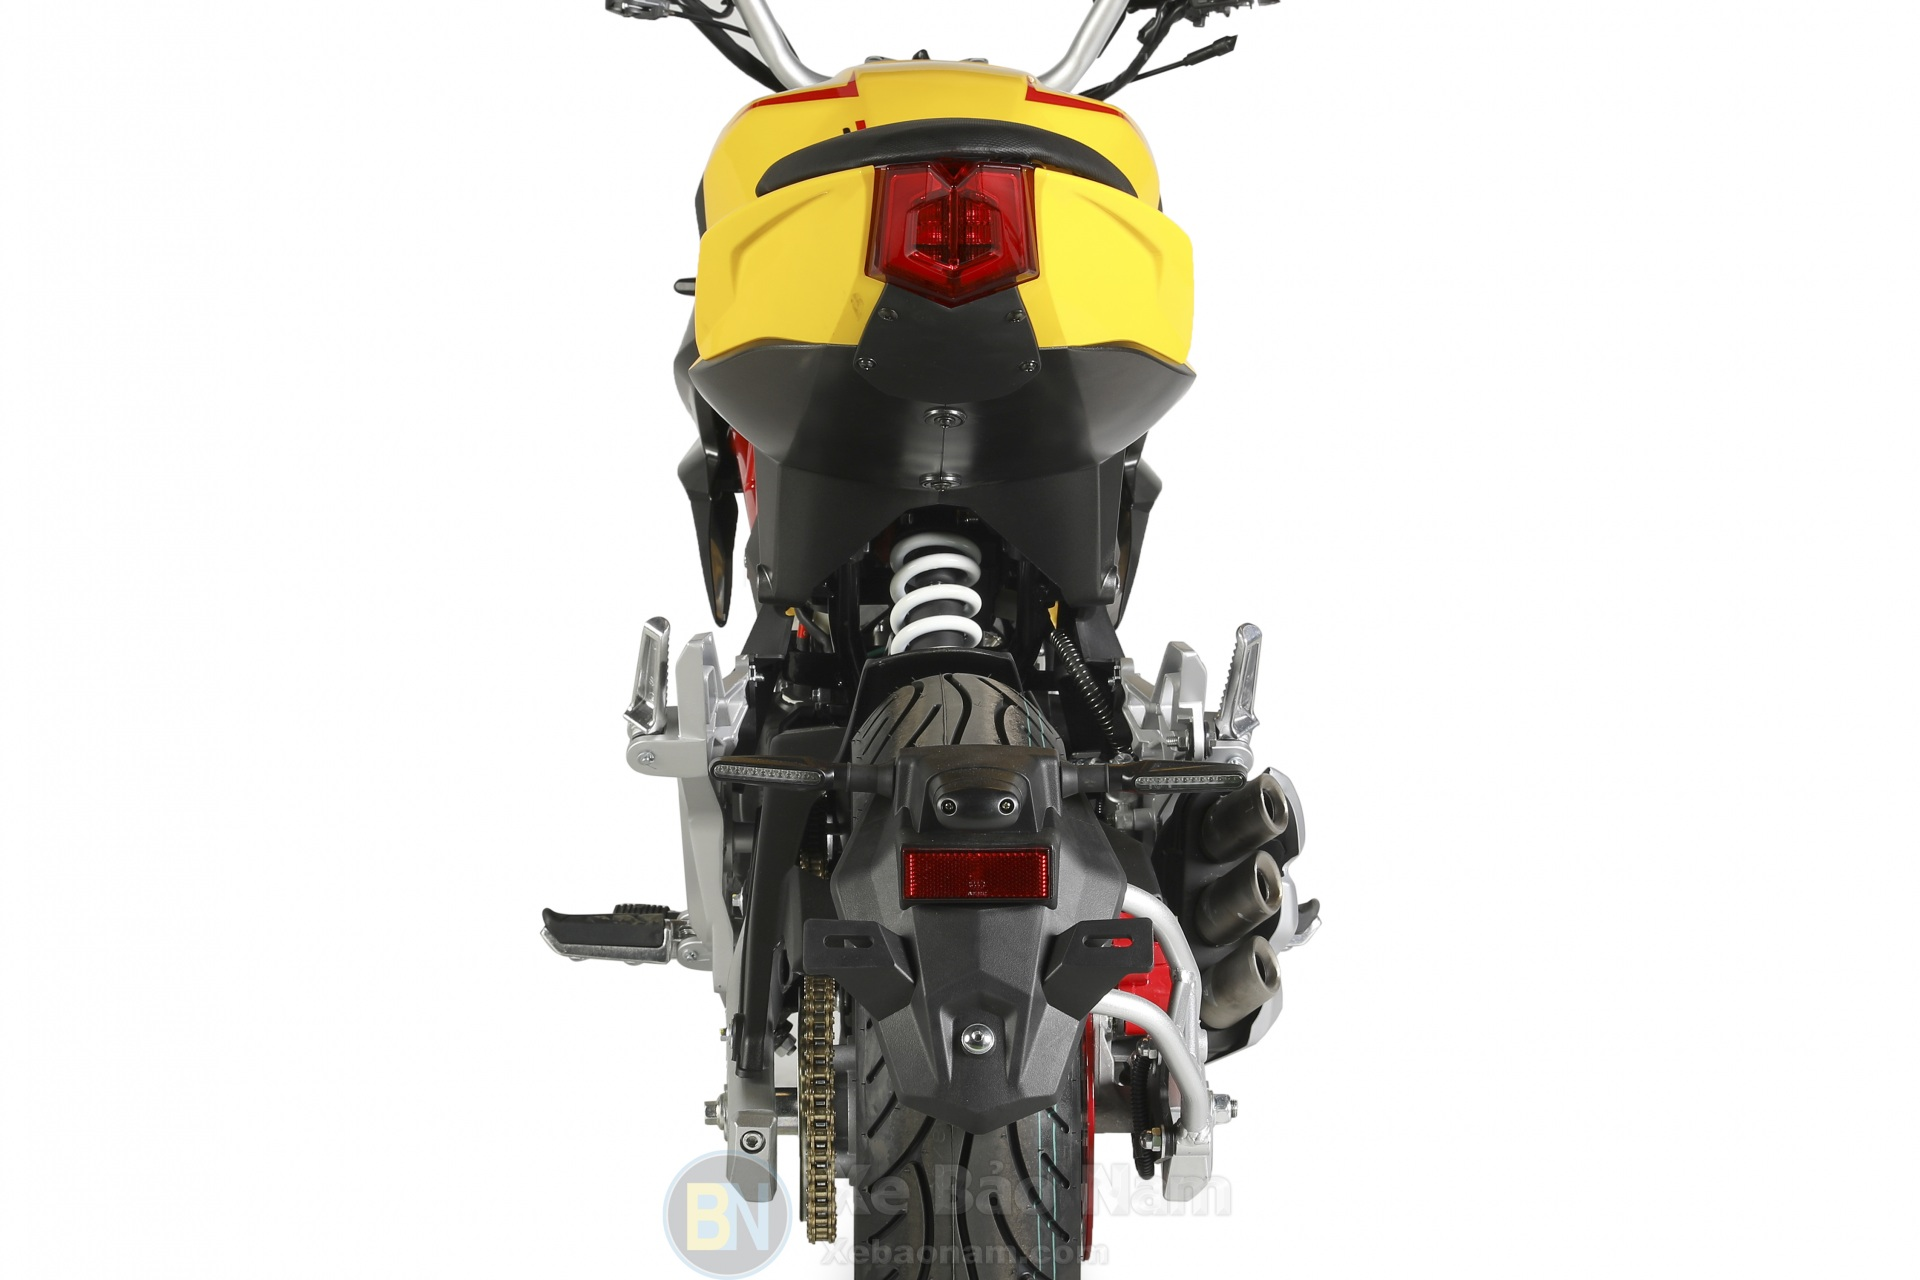 xe-may-mv-agusta-mini-110-new-xebaonam-12